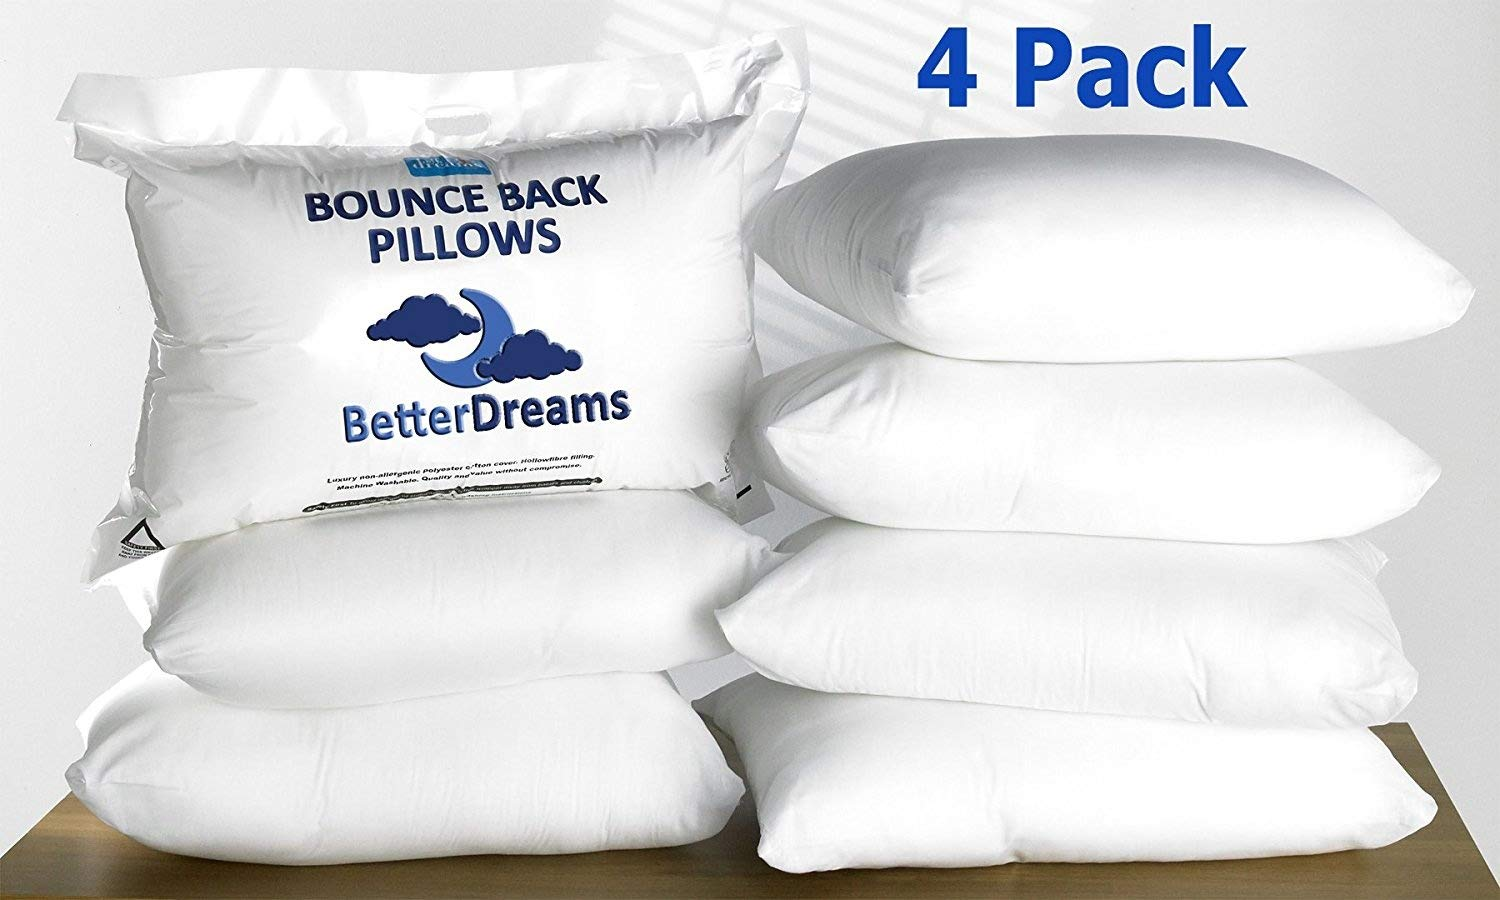 Bounce Back Pillows 4 Pack Quality Hollow Fibre Filled Bounce Back Pillows Free UK Delivery Better Dreams